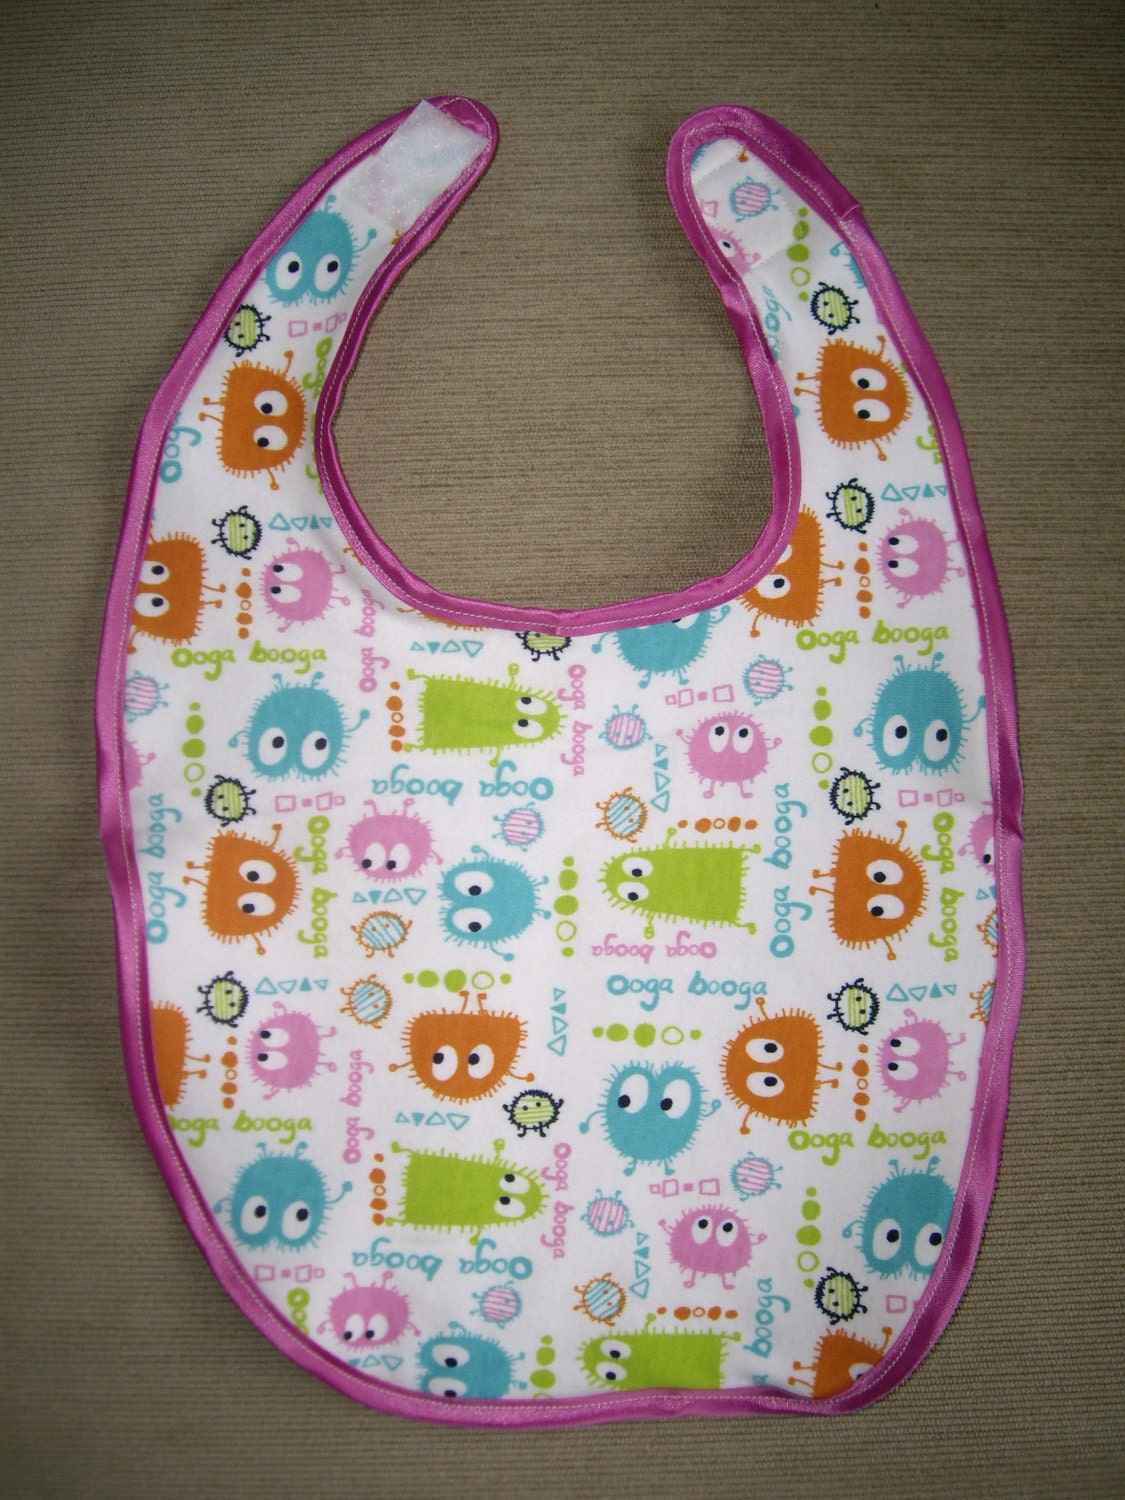 Reversible bib made with organic terry towelling and organic cotton jersey